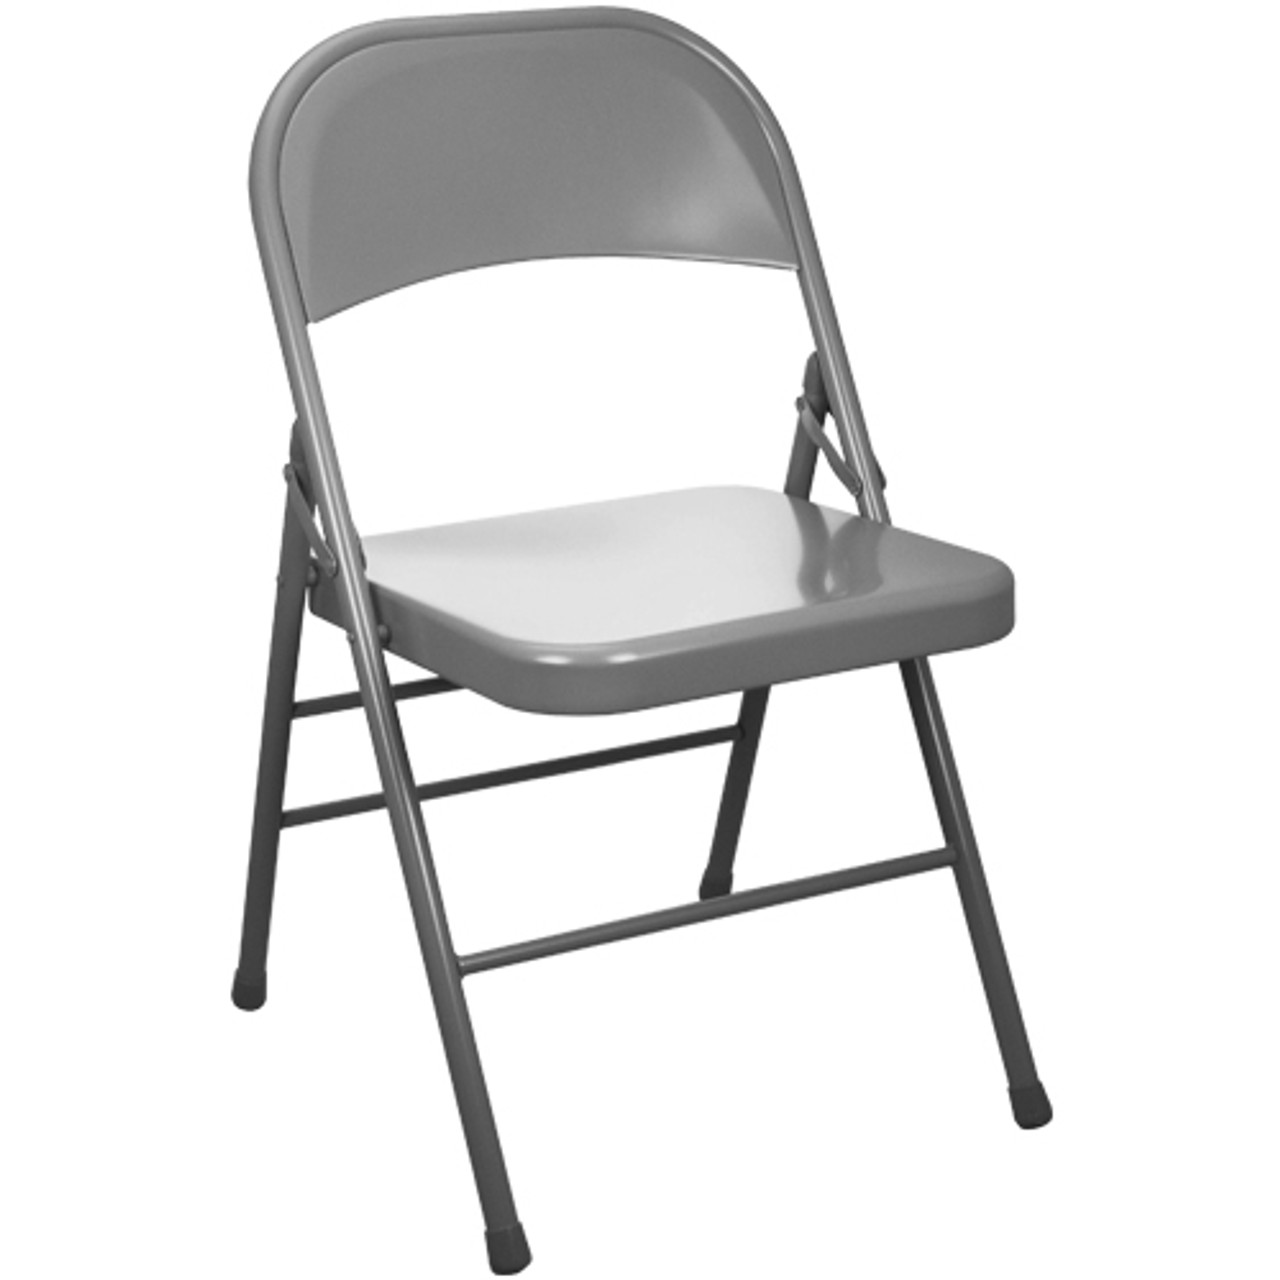 Advantage Gray Metal Folding Chair Edpi903m Grey